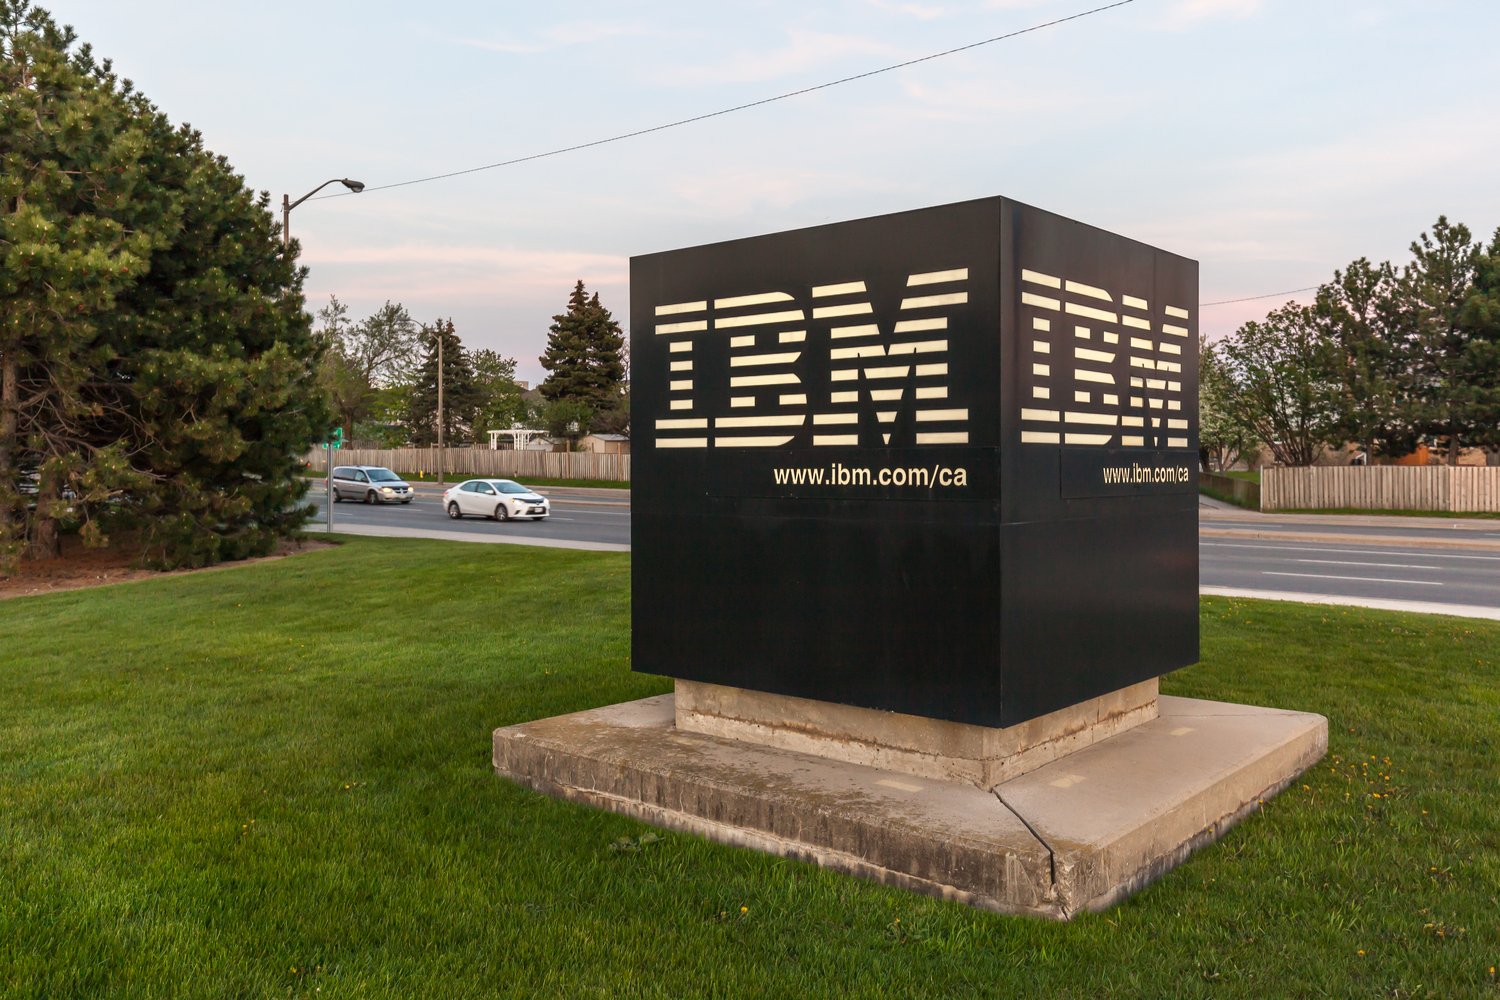 IBM Wins Patent for Blockchain-Based Network Security System - CoinDesk